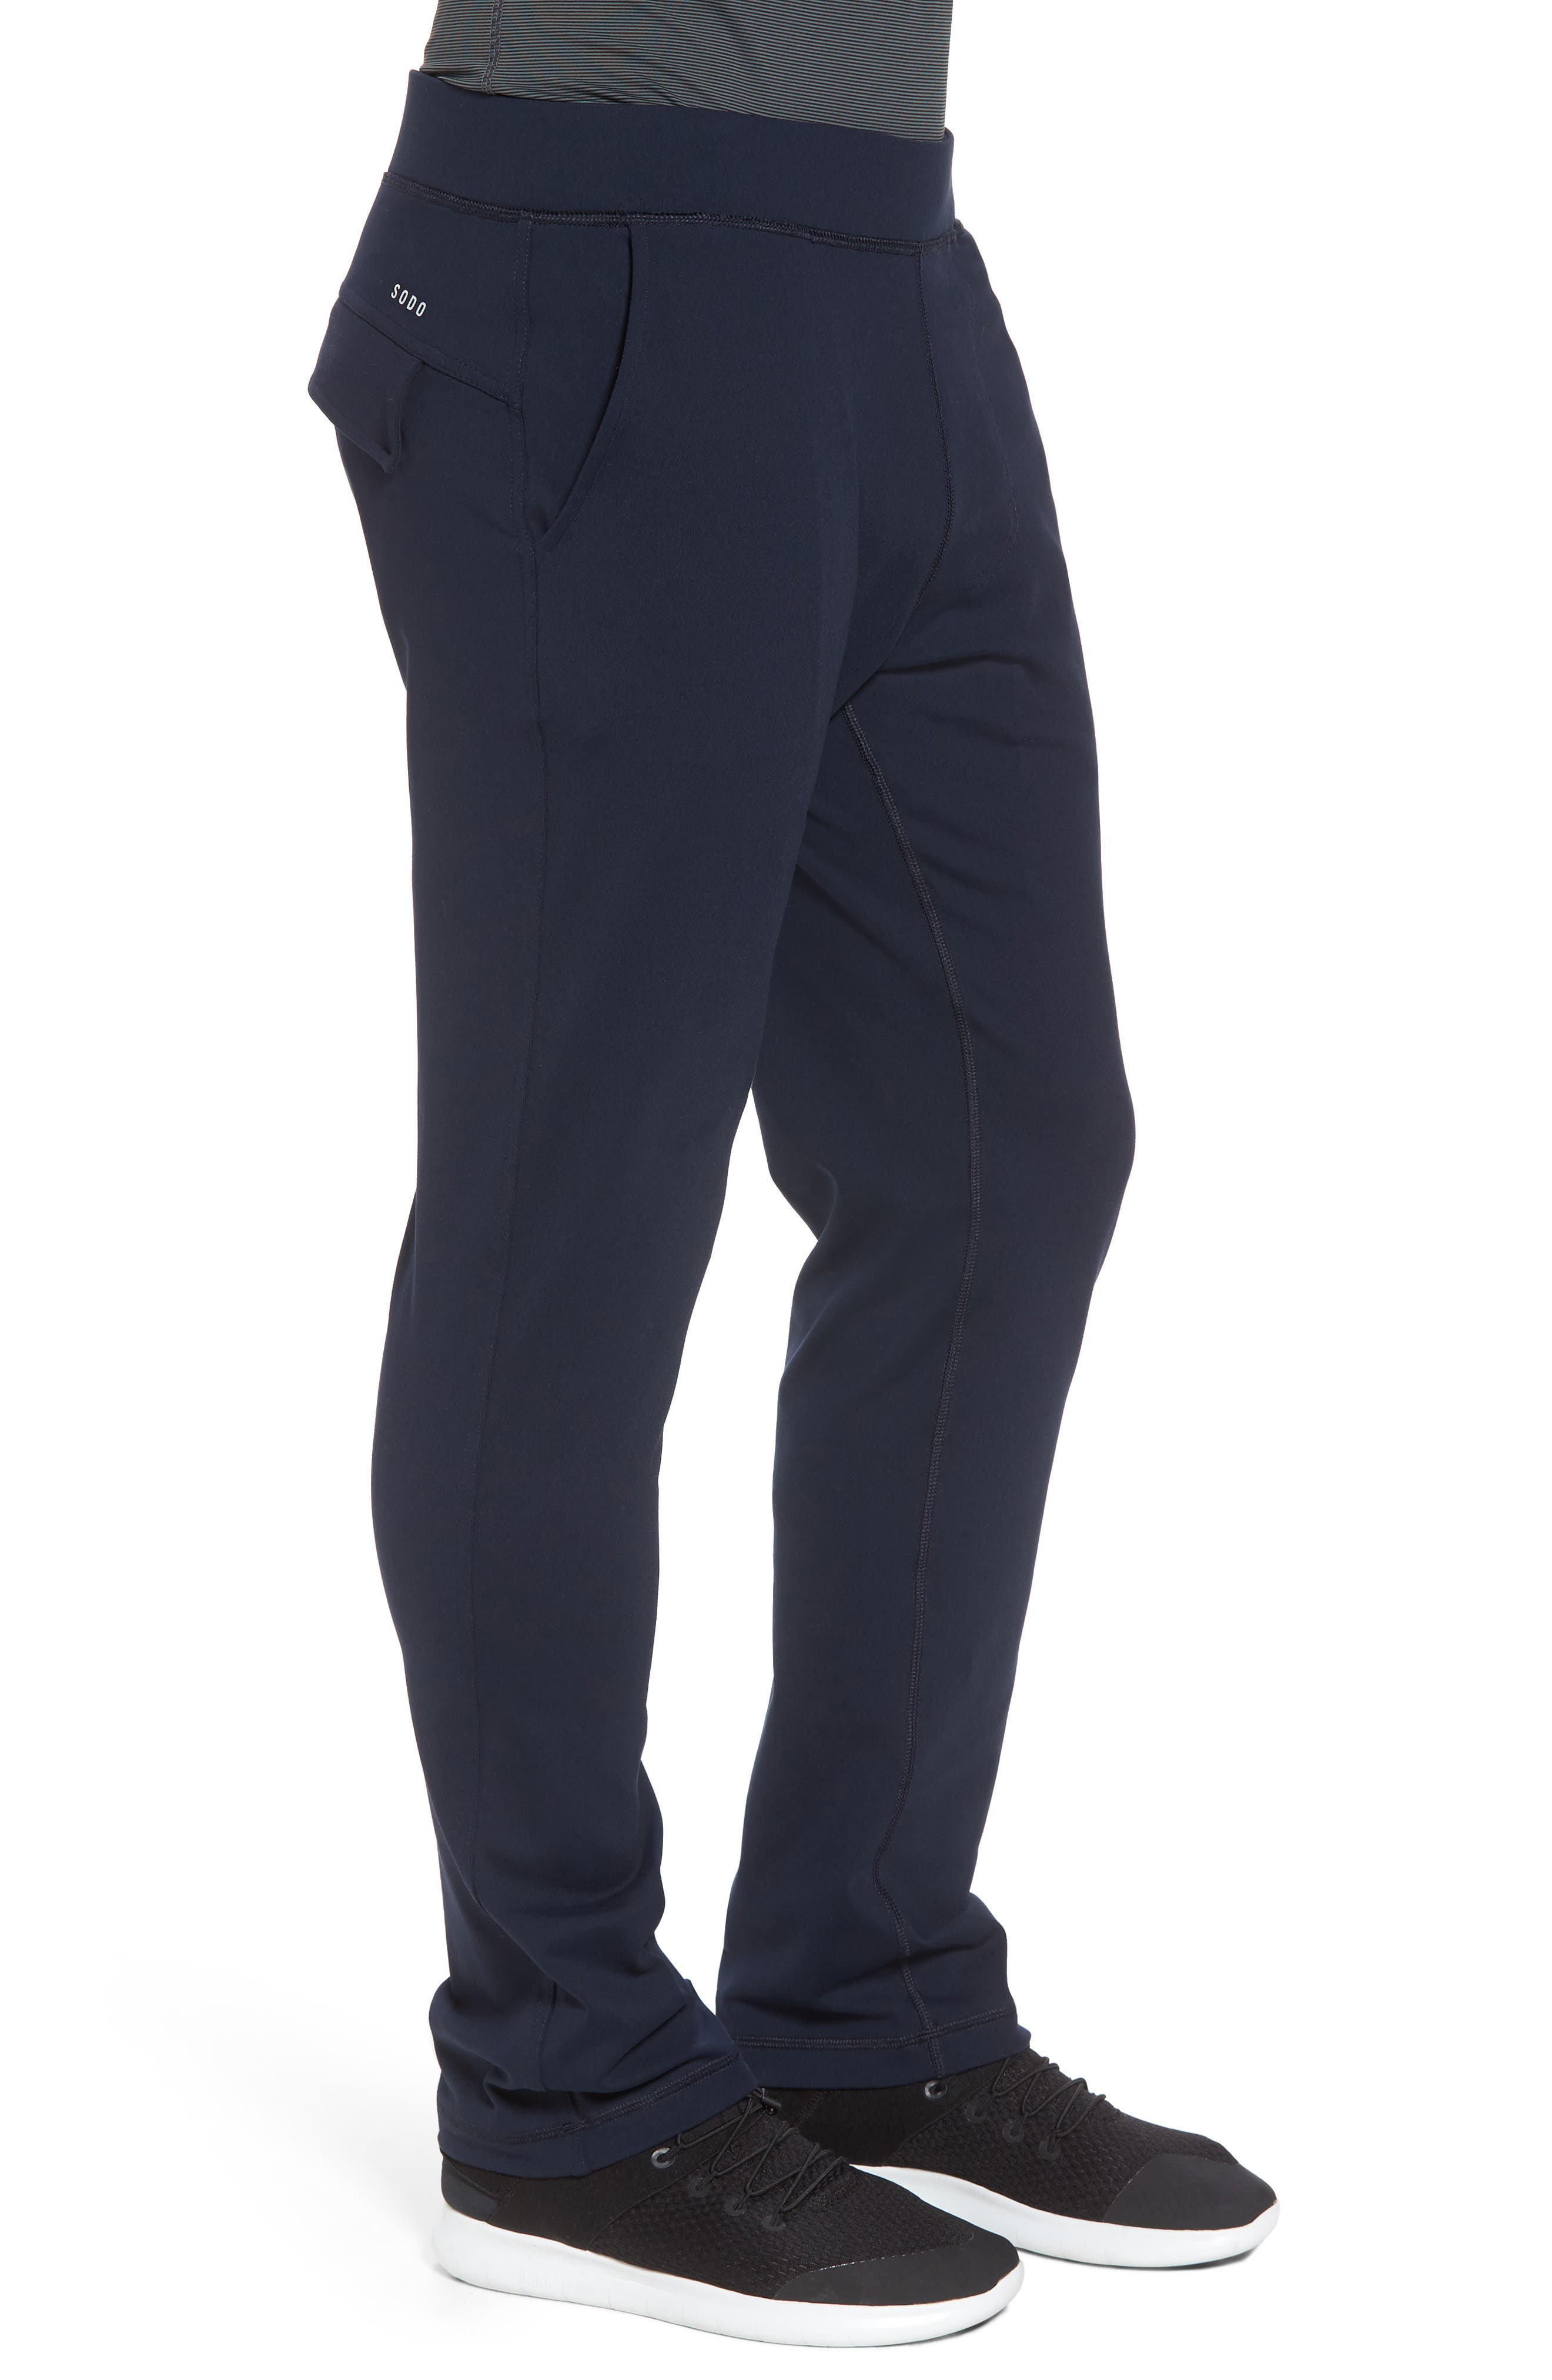 206 Pants,                             Alternate thumbnail 3, color,                             Navy